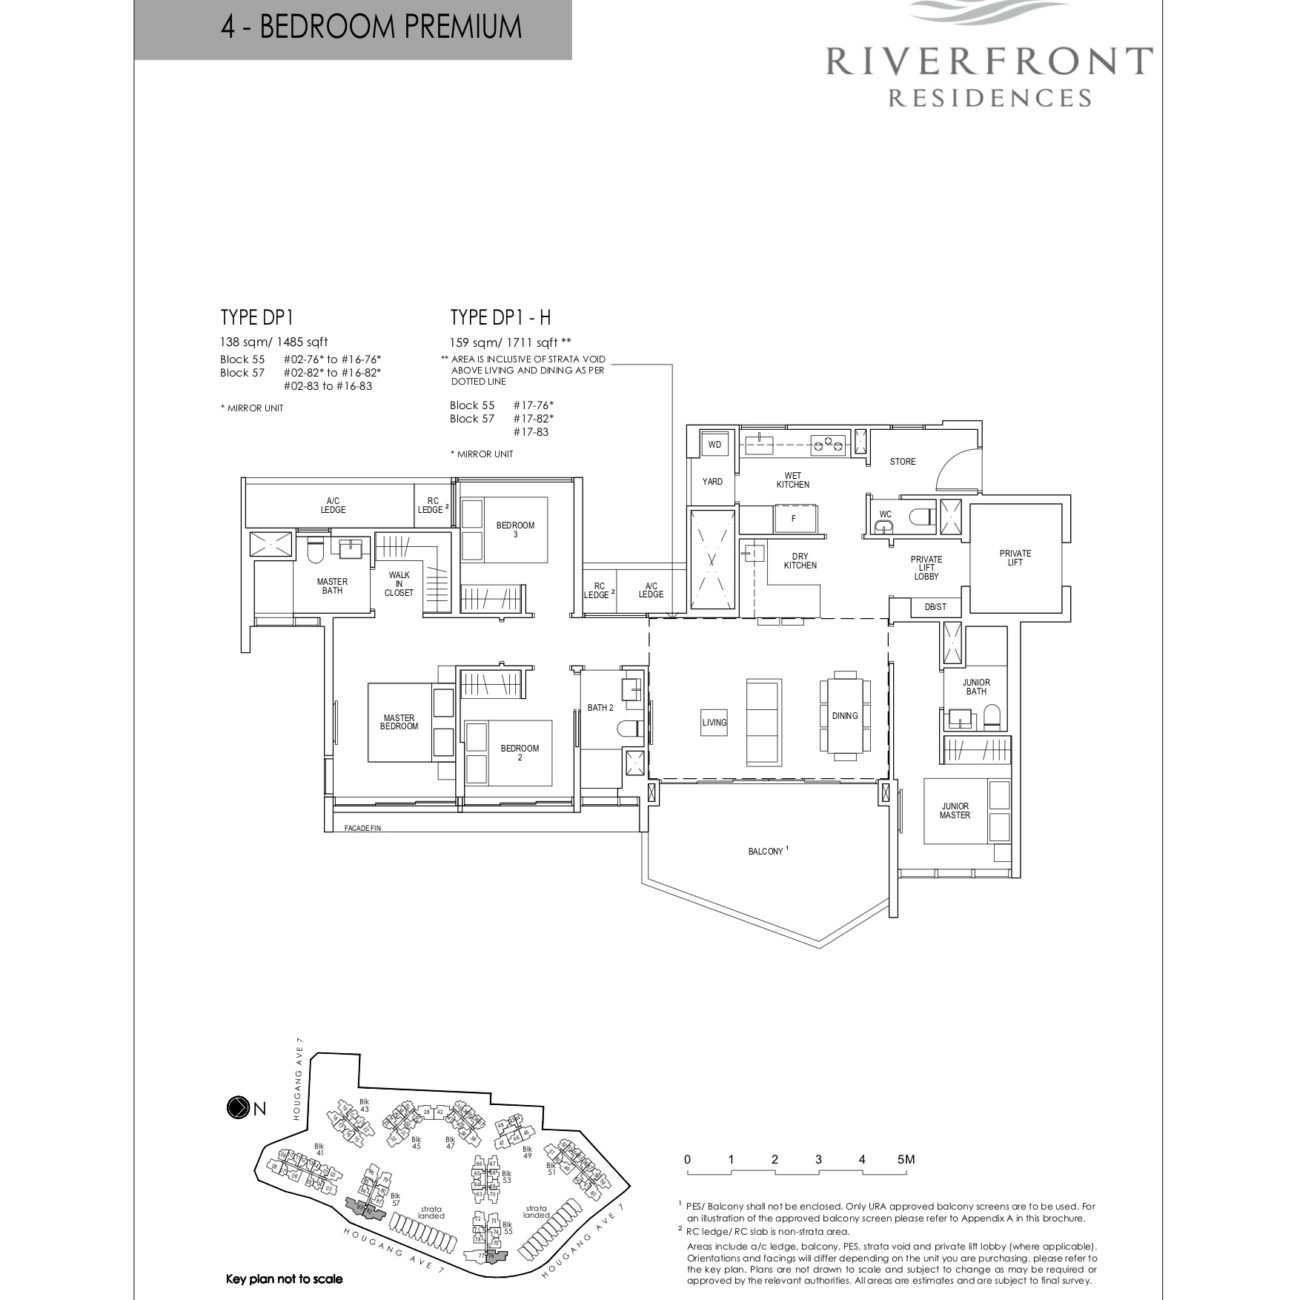 riverfront-residences-floorplan-4bedroom-premium